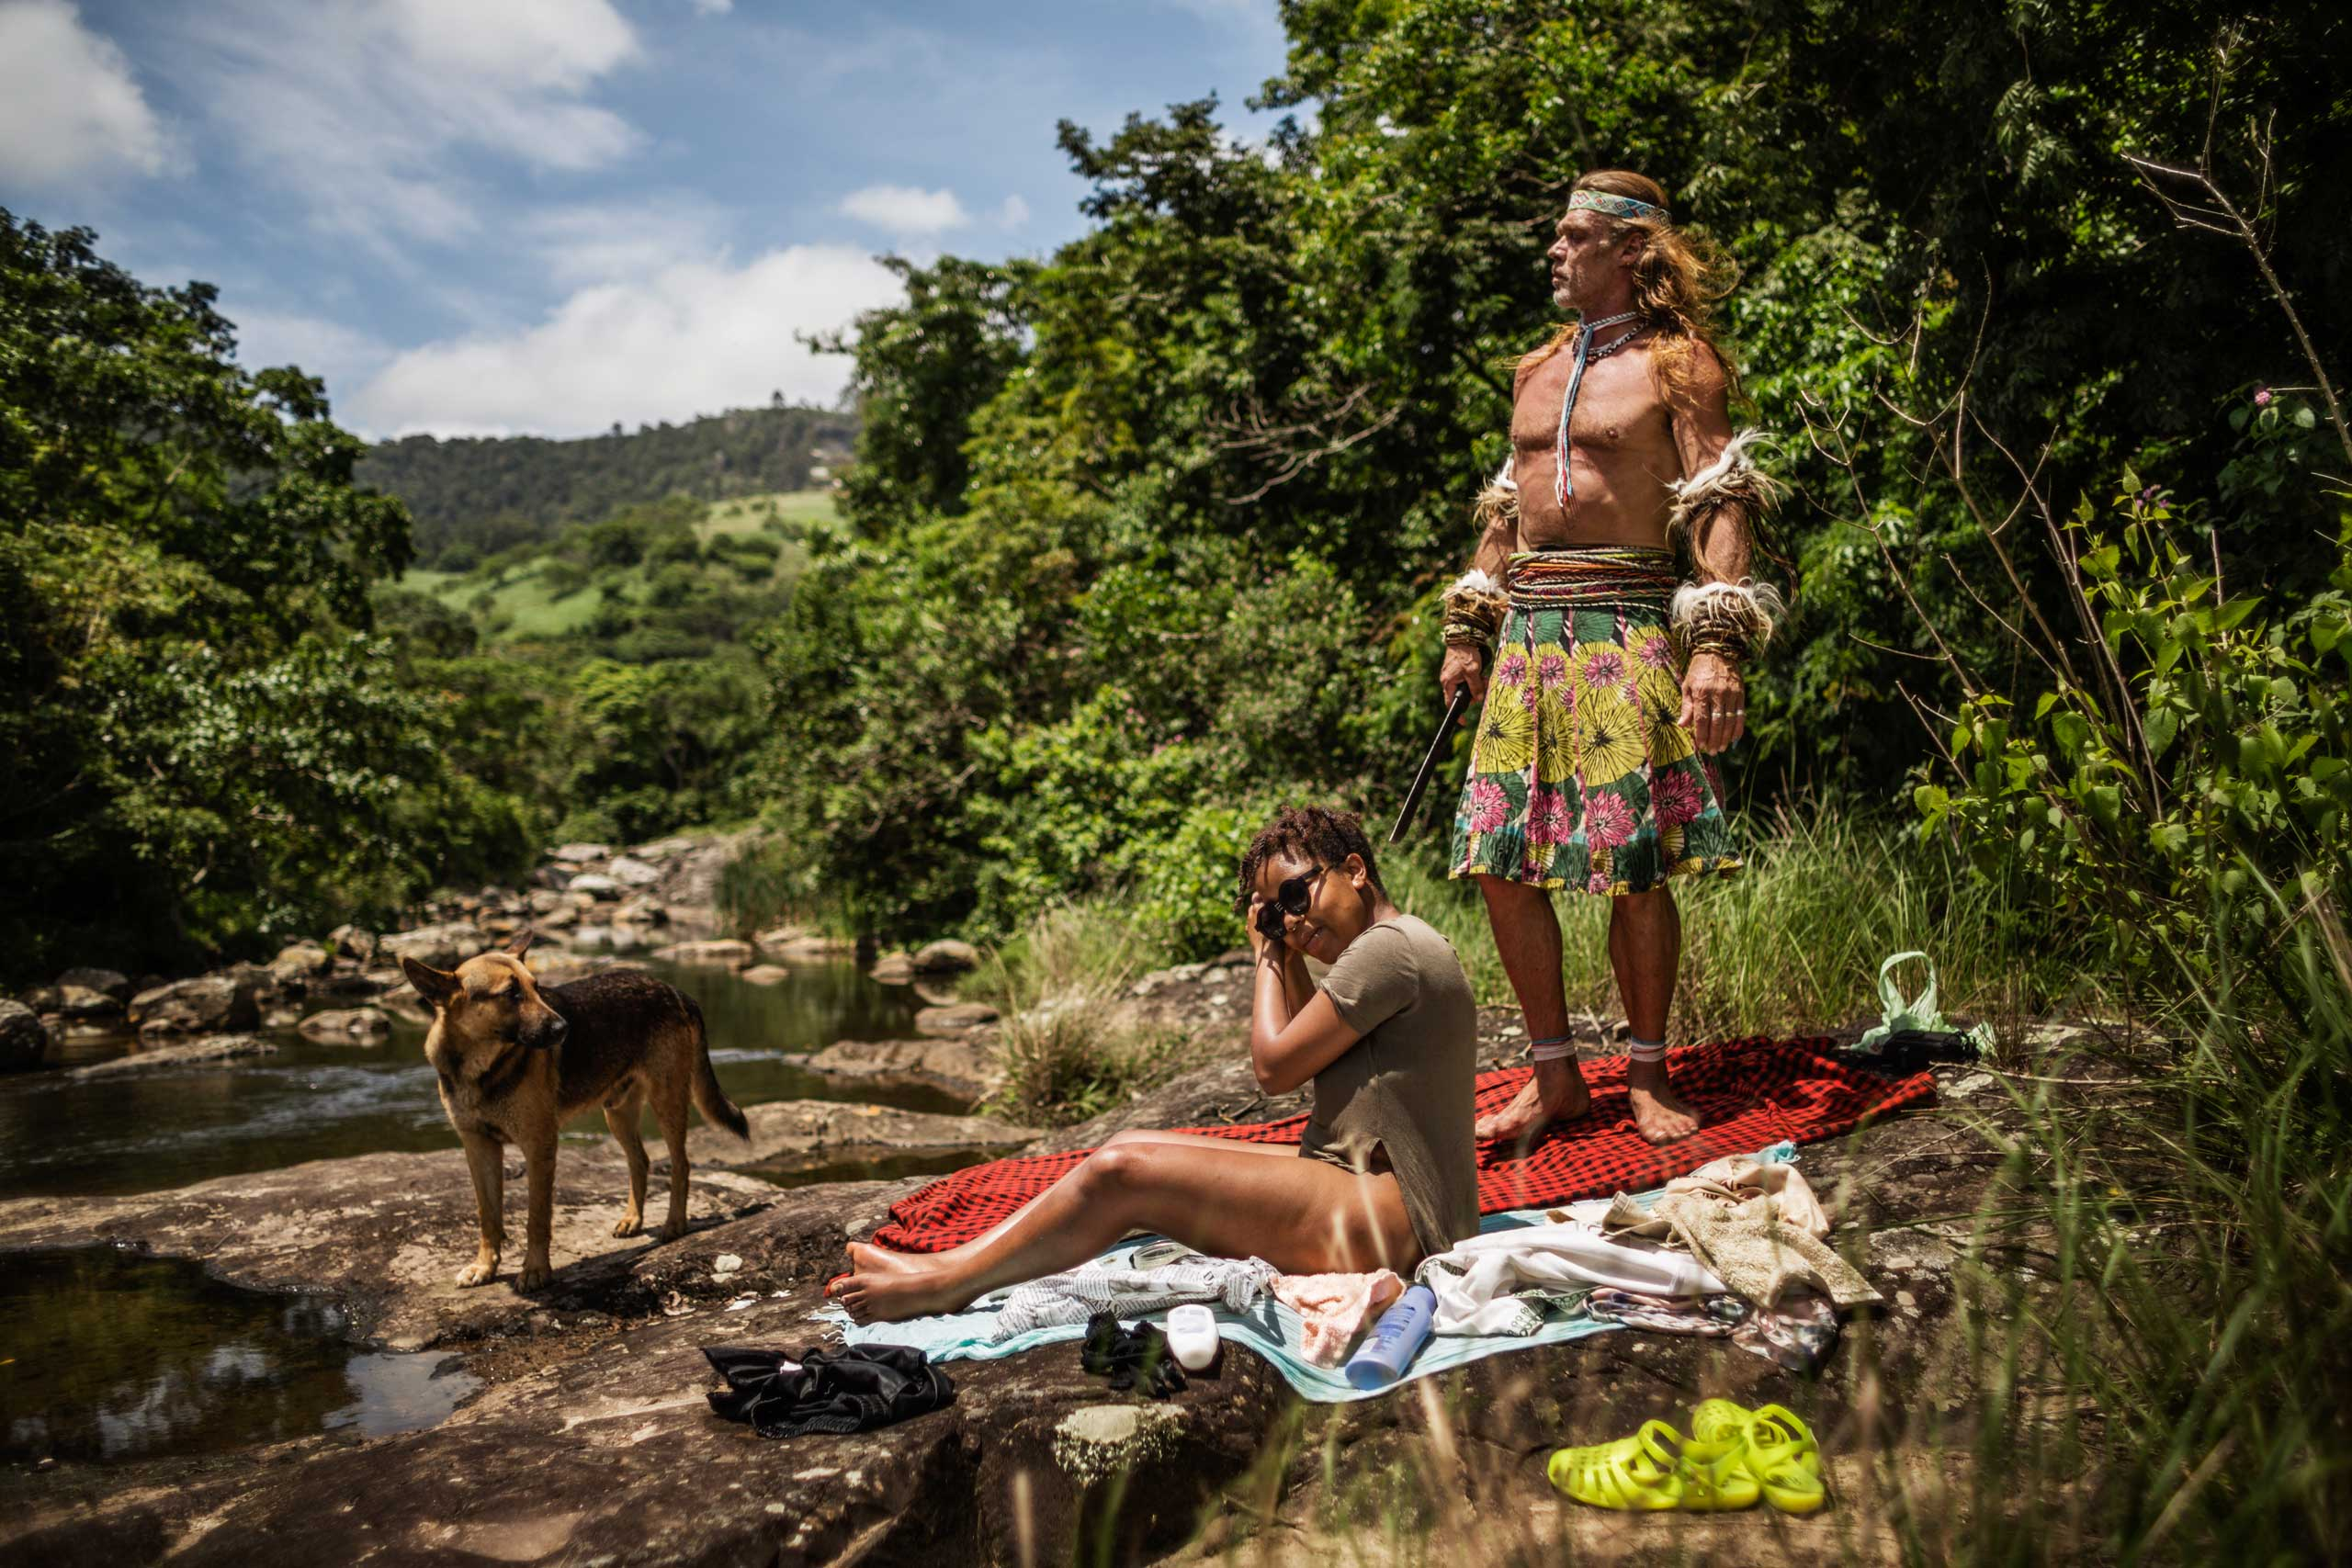 A day before her 'ingenisa', the ceremony that initiates her as a thwasa, Gugulethu Khumalo relaxes at the river with her teacher Chris Ntombemhlophe Reid on Nov. 27, 2014 in Mdakane, Lusikisiki District, South Africa.